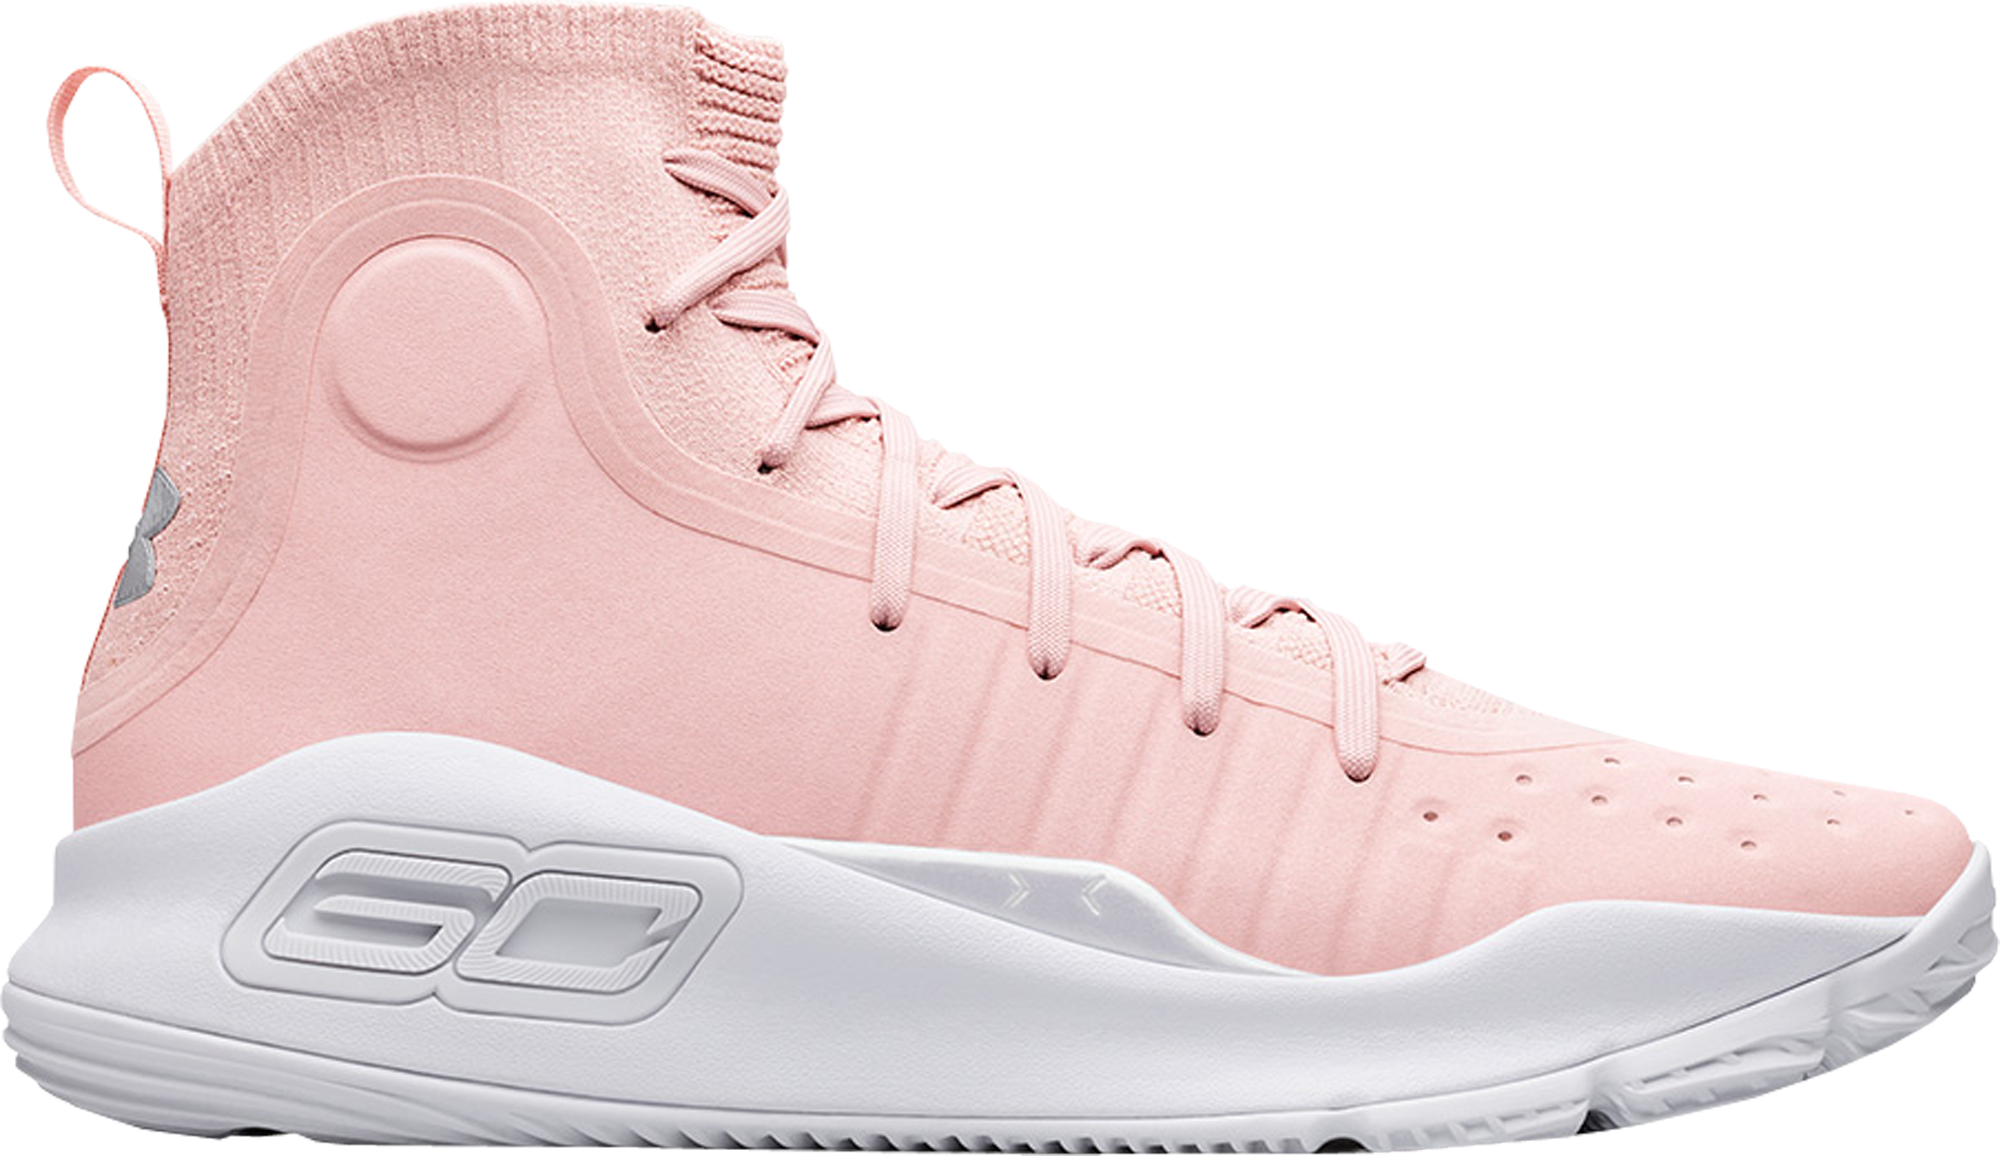 2052a7b6db4a Under Armour Curry 4 Flushed Pink